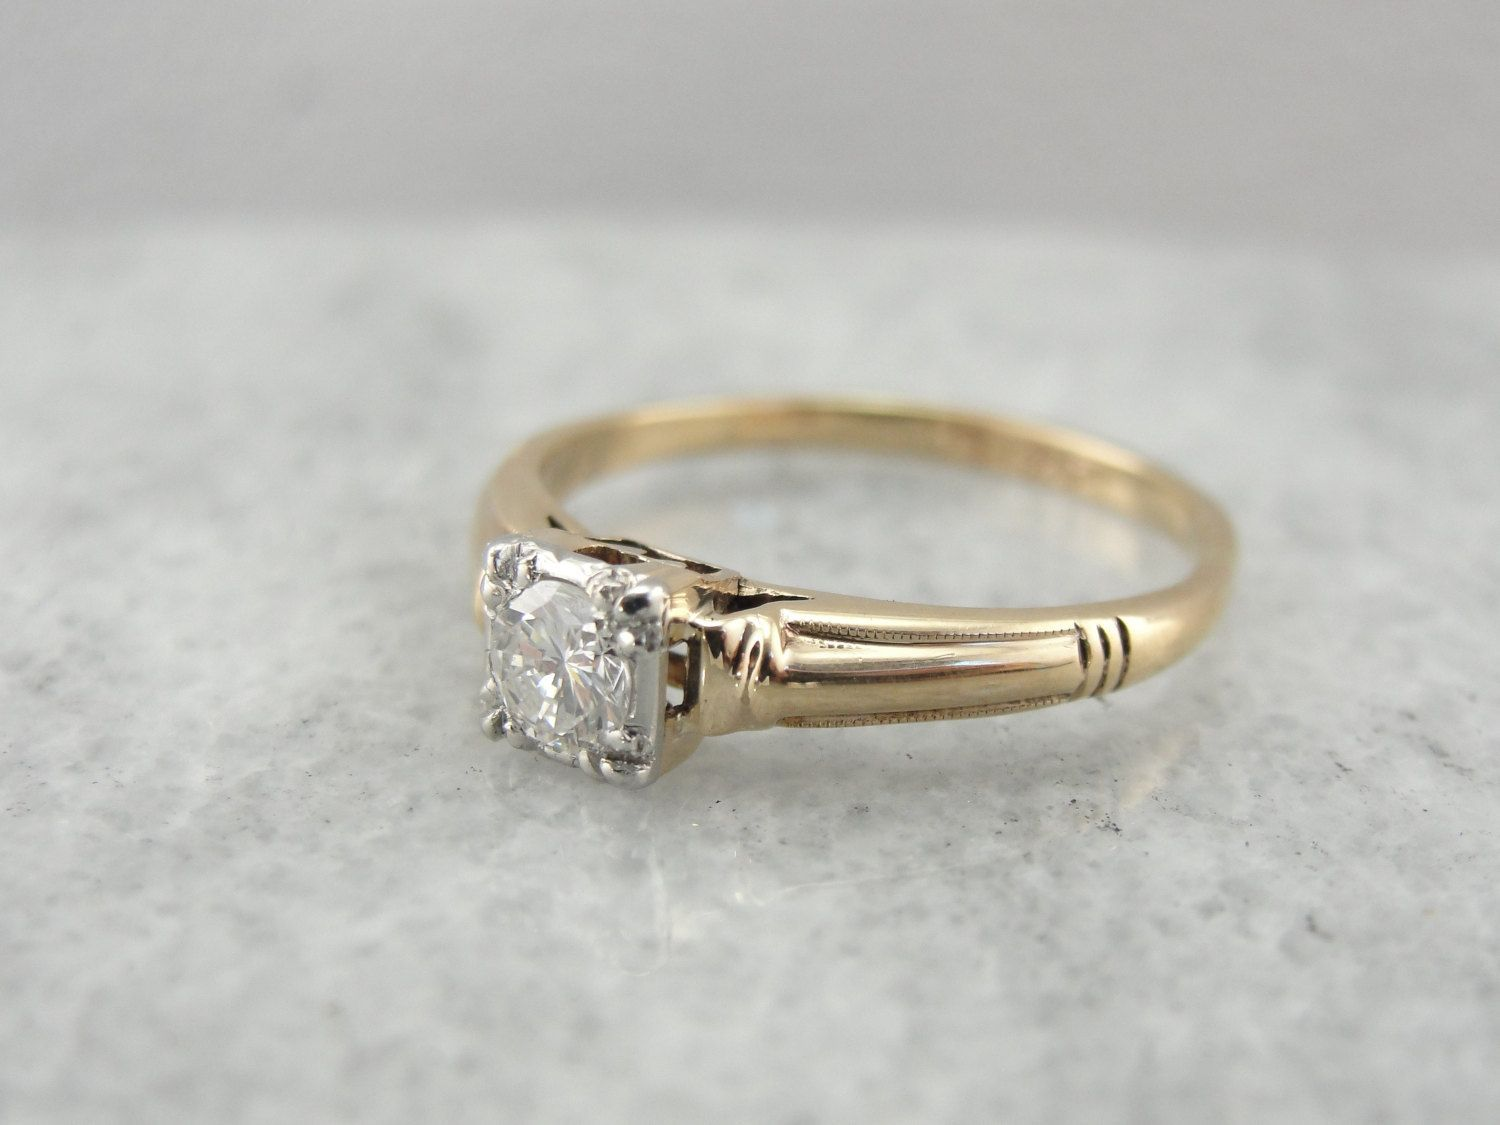 Simple 1940 S Diamond Solitaire Engagement Ring In Yellow Gold Vtnjpc D Ring Diamant Gouden Ring